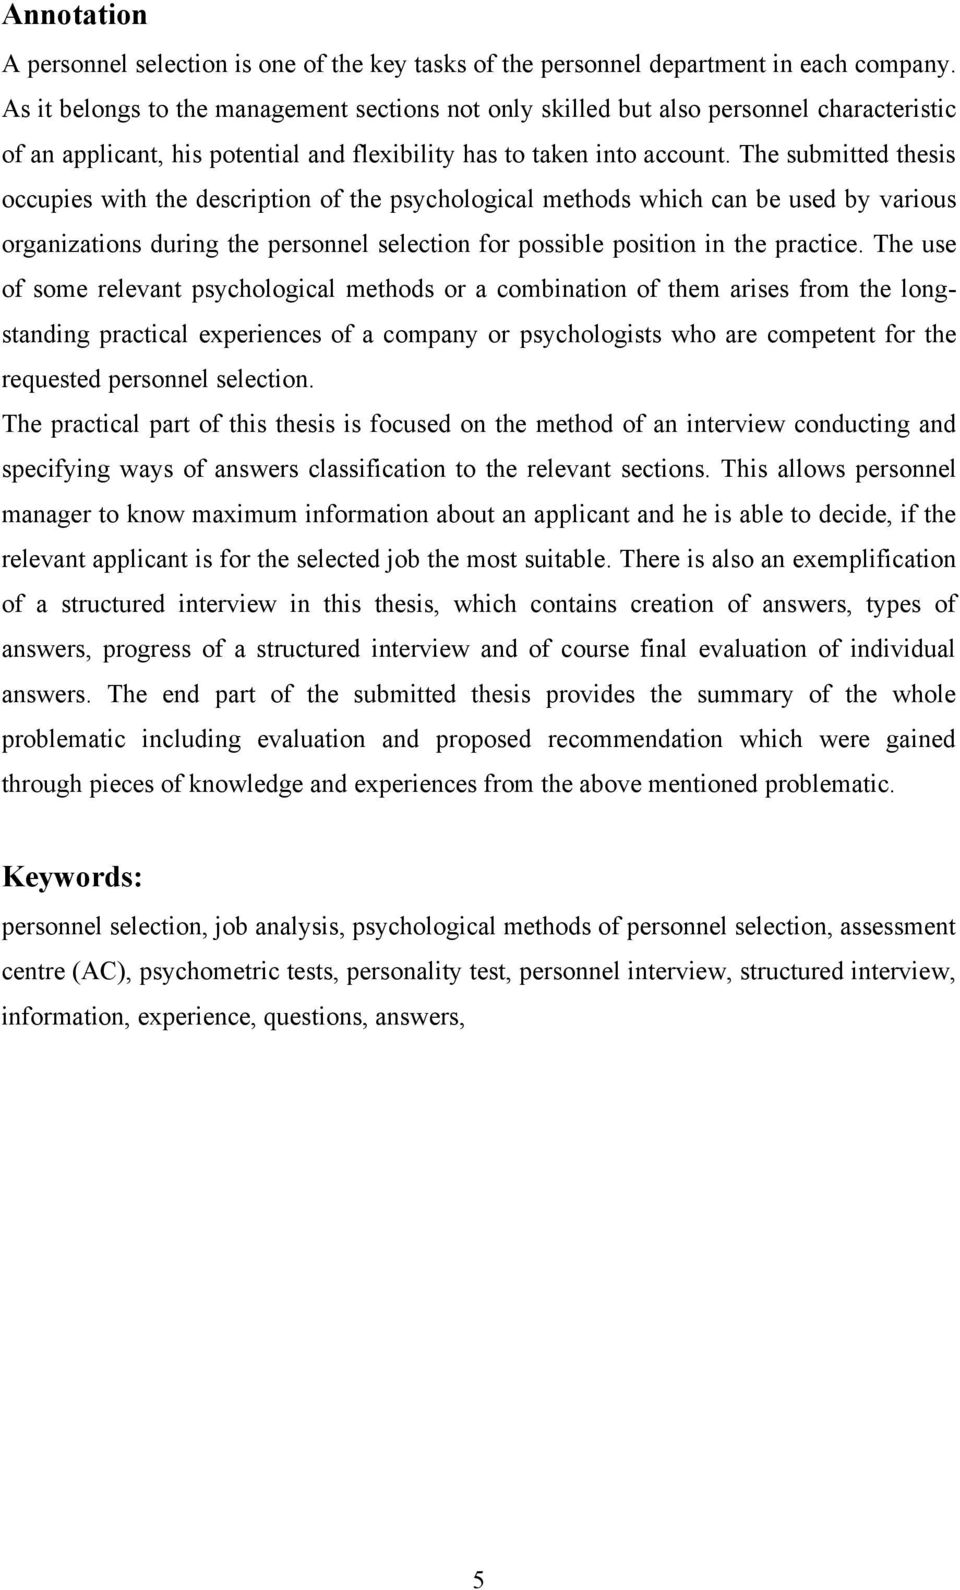 The submitted thesis occupies with the description of the psychological methods which can be used by various organizations during the personnel selection for possible position in the practice.